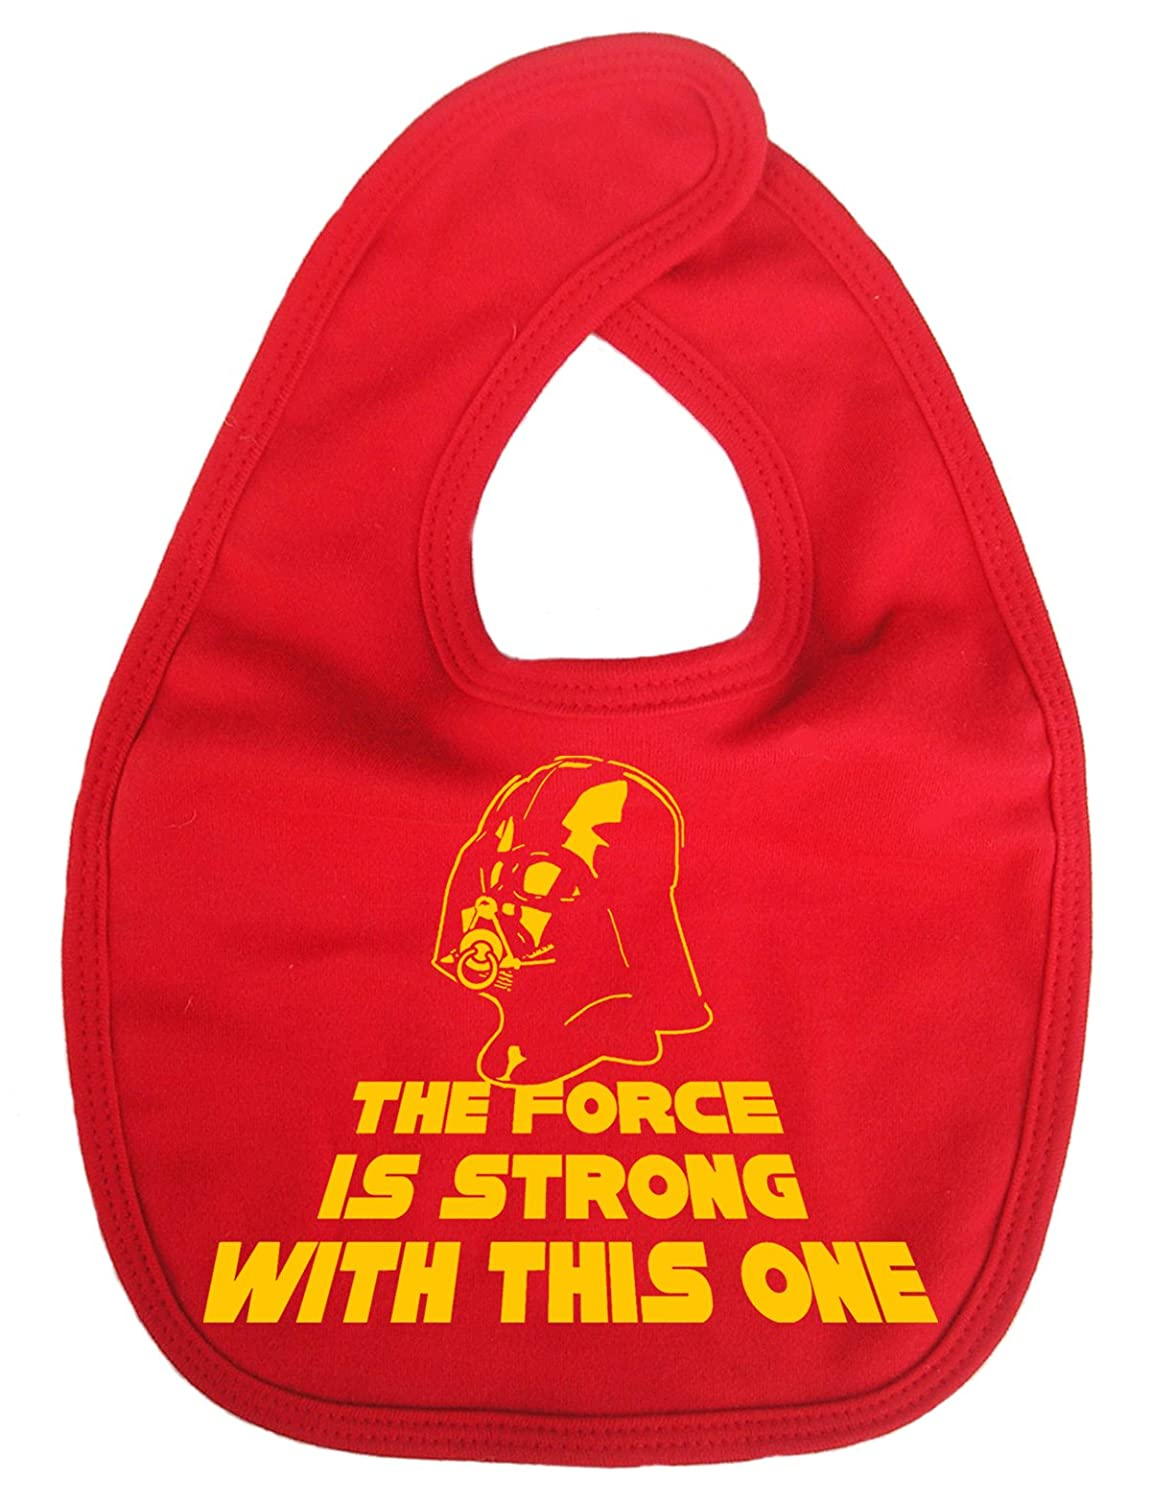 Dirty Fingers, The Force is strong with this one, Darth Vadar, Baby Unisex Bib, Black DFBIBforceisstrongK